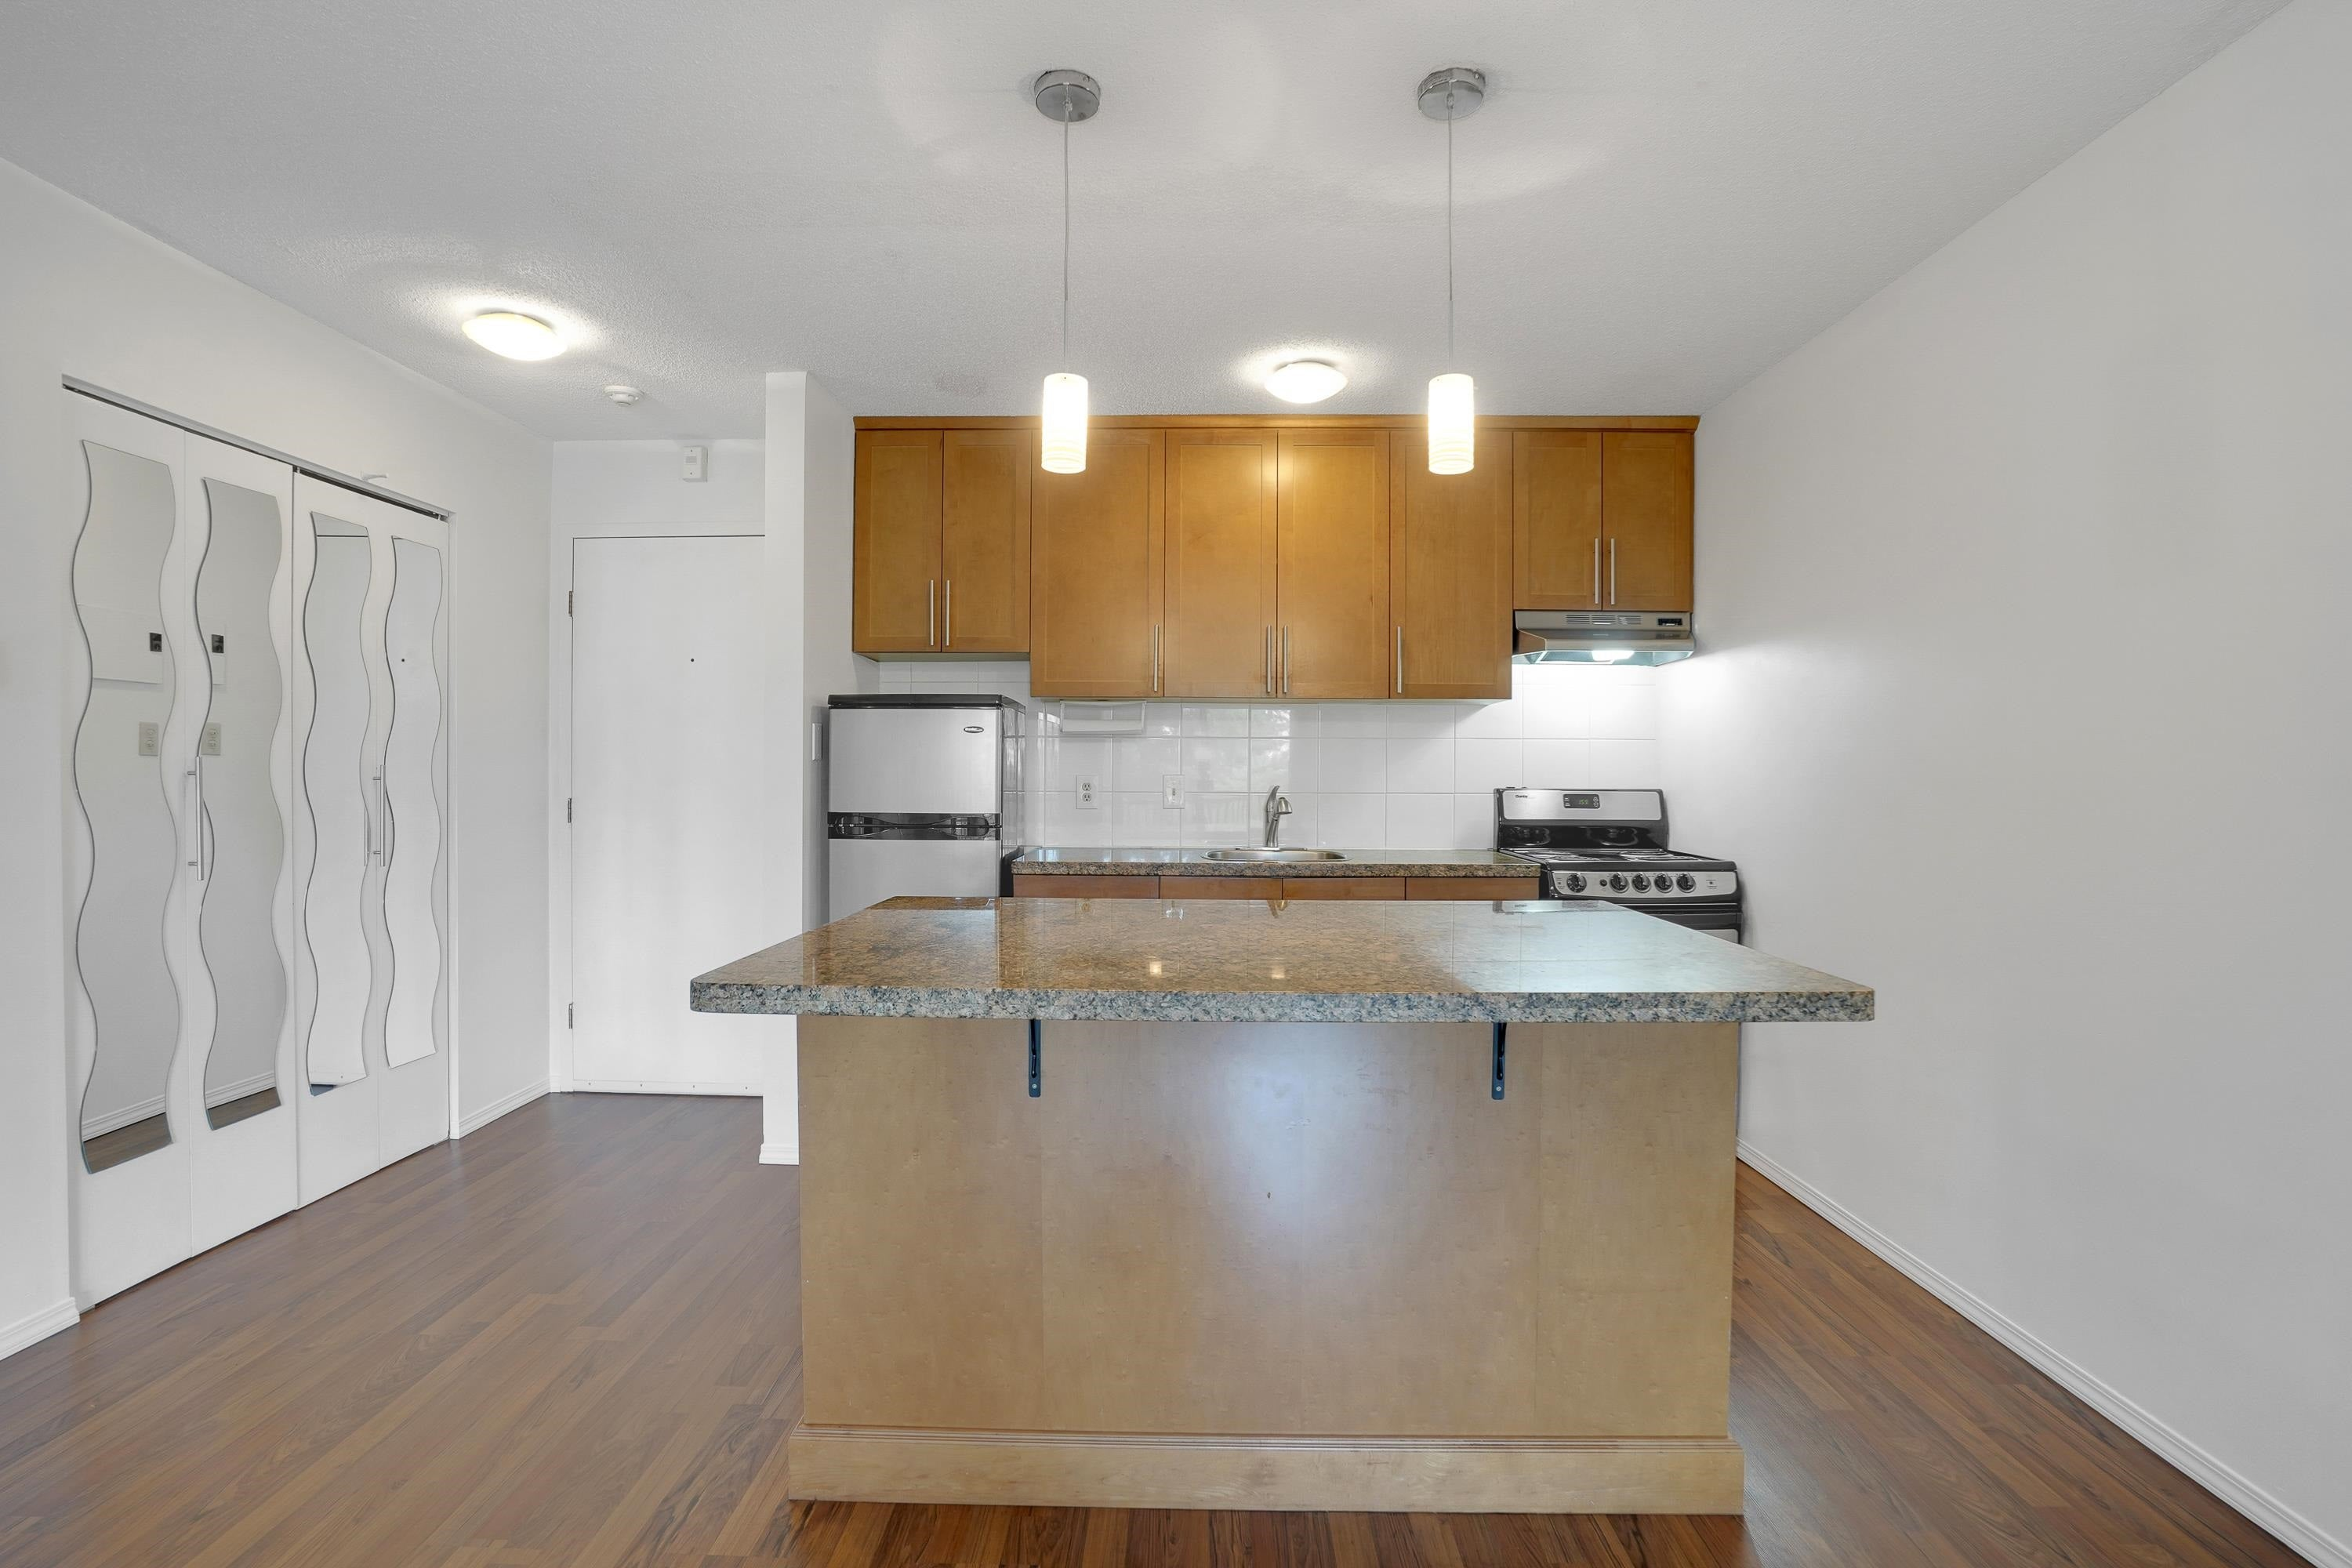 208 270 WEST 3RD STREET - Lower Lonsdale Apartment/Condo for sale, 1 Bedroom (R2615758) - #12